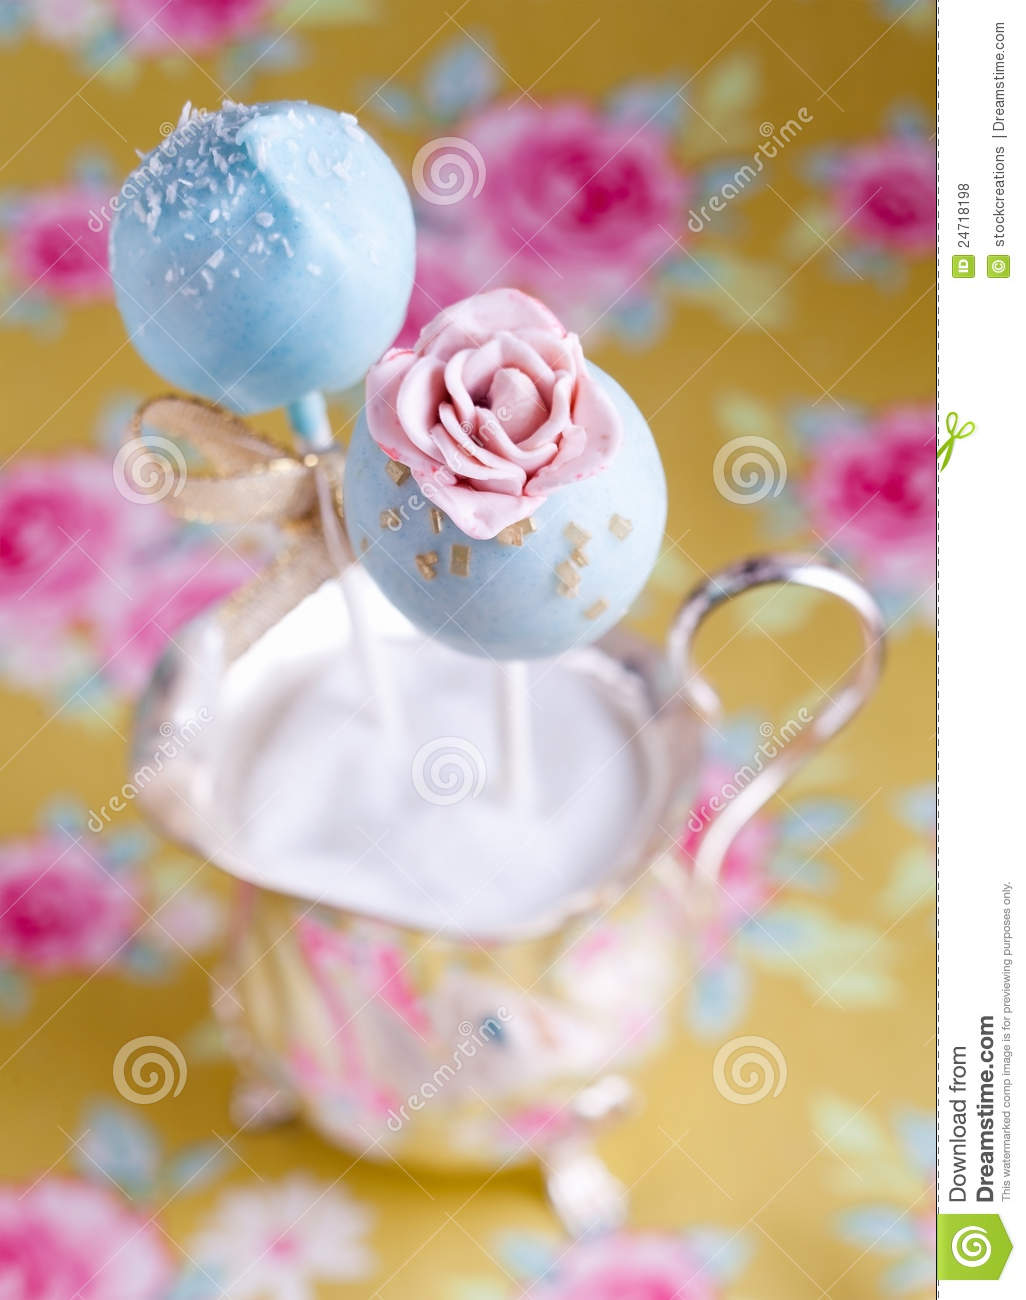 How To Melt Icing For Cake Pops